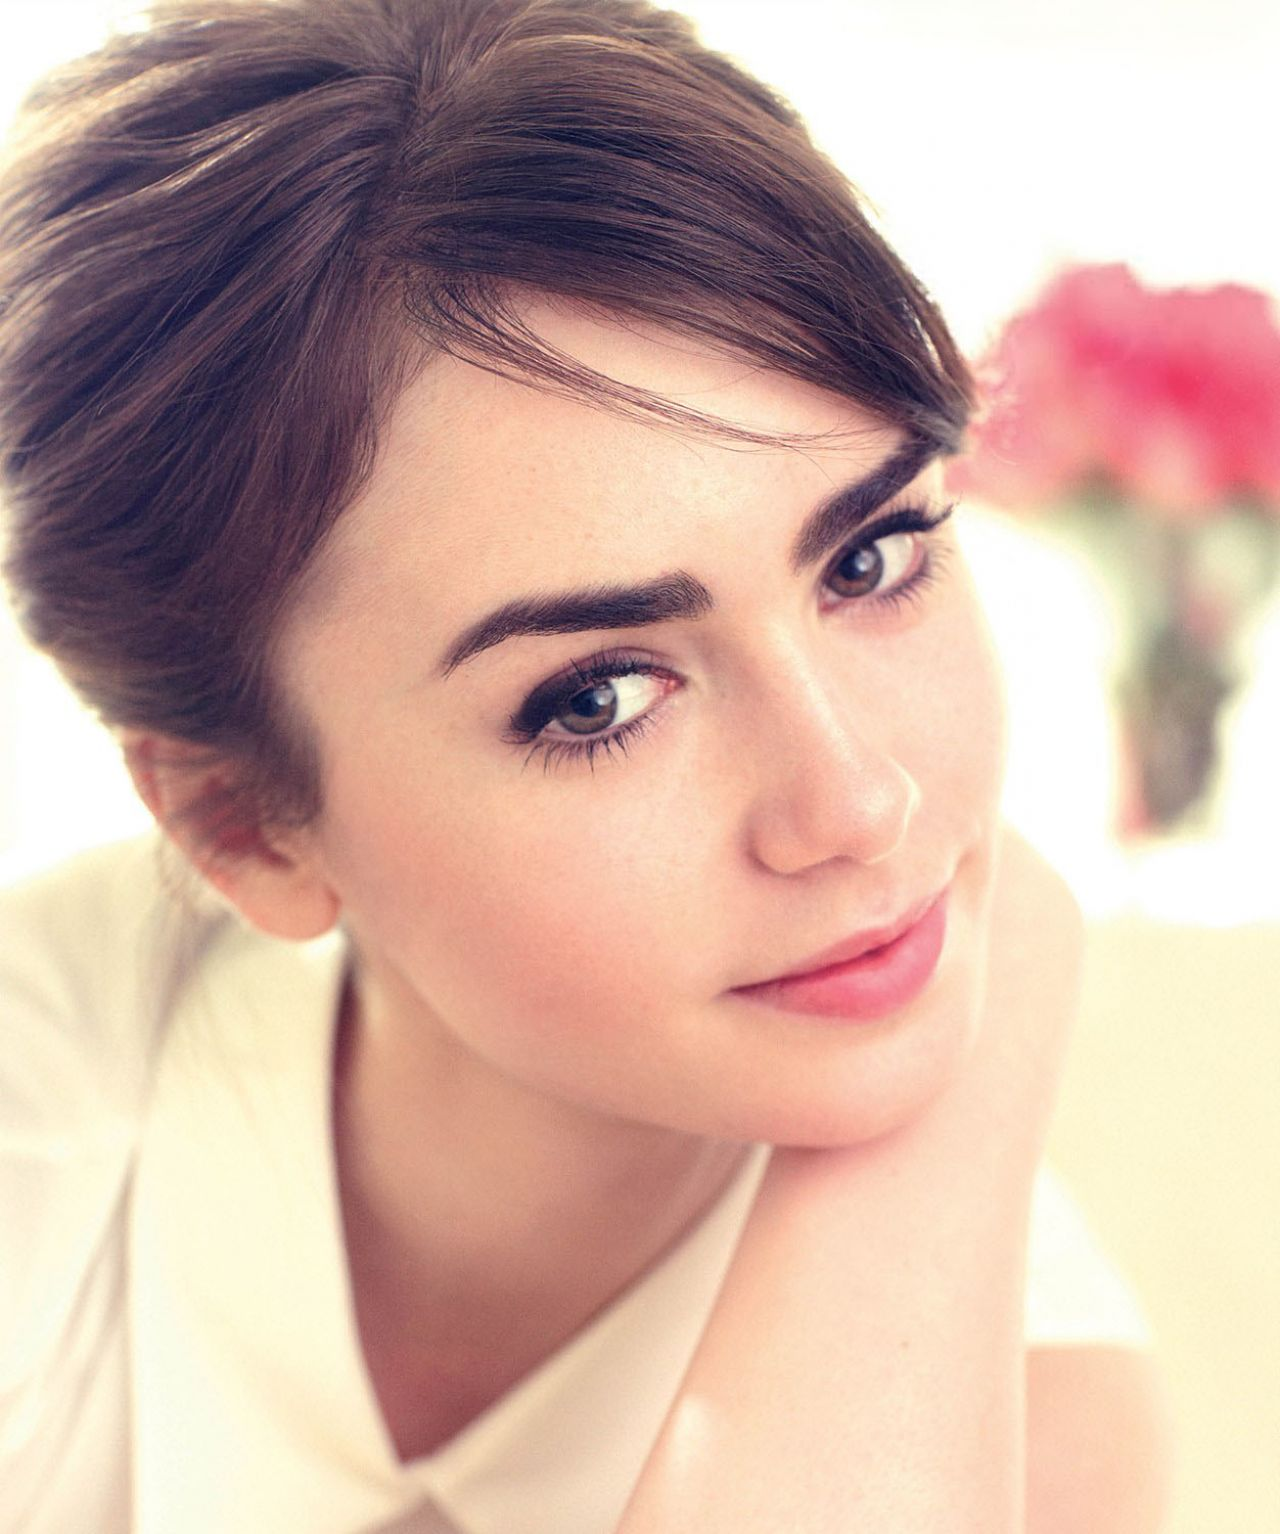 Lily collins face wallpapers